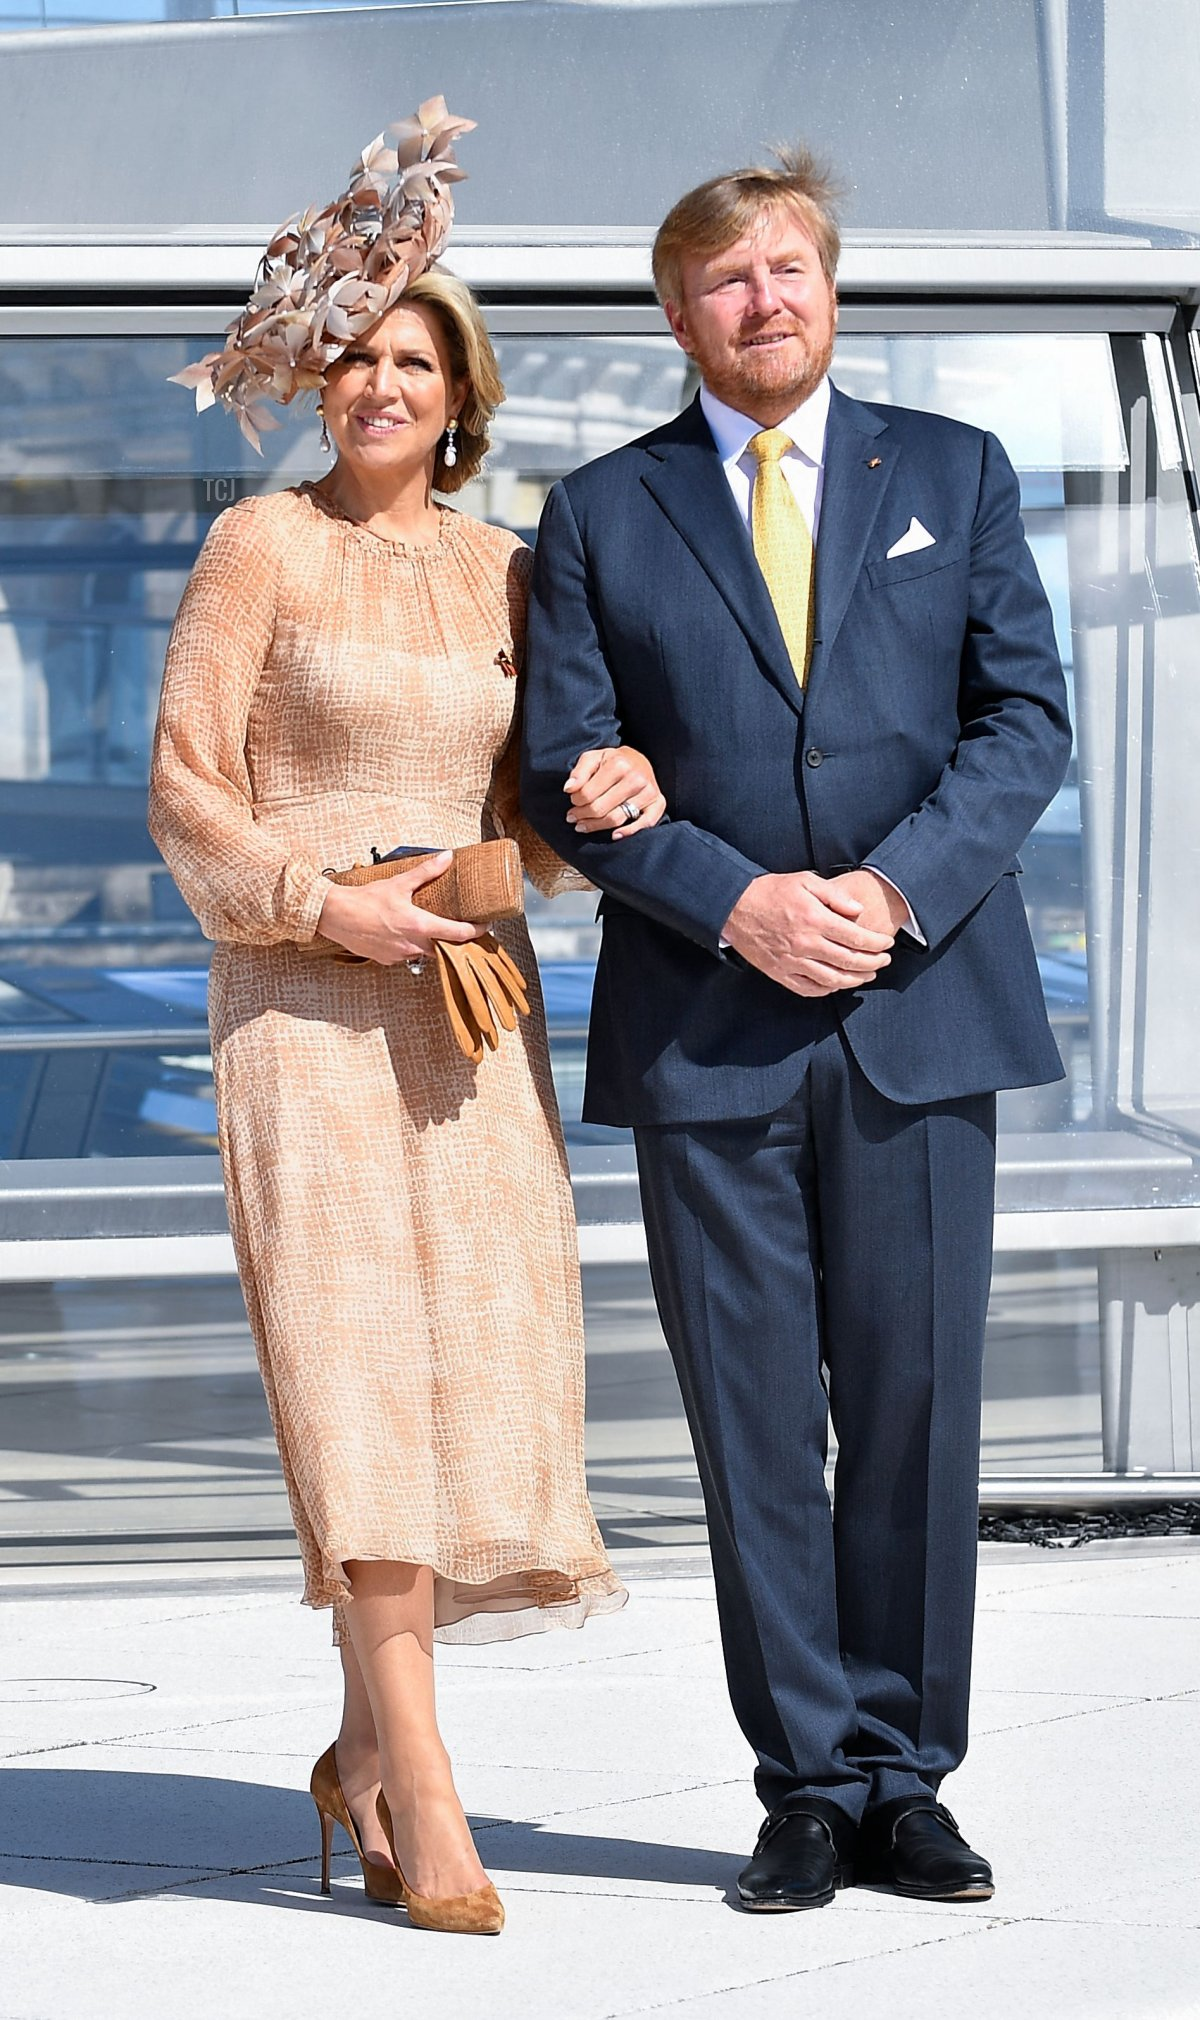 King Willem-Alexander and Queen Maxima of the Netherlands pose outside th cupola of the Reichstag building, housing the Bundestag, the lower house of parliament, in Berlin on July 6, 2021